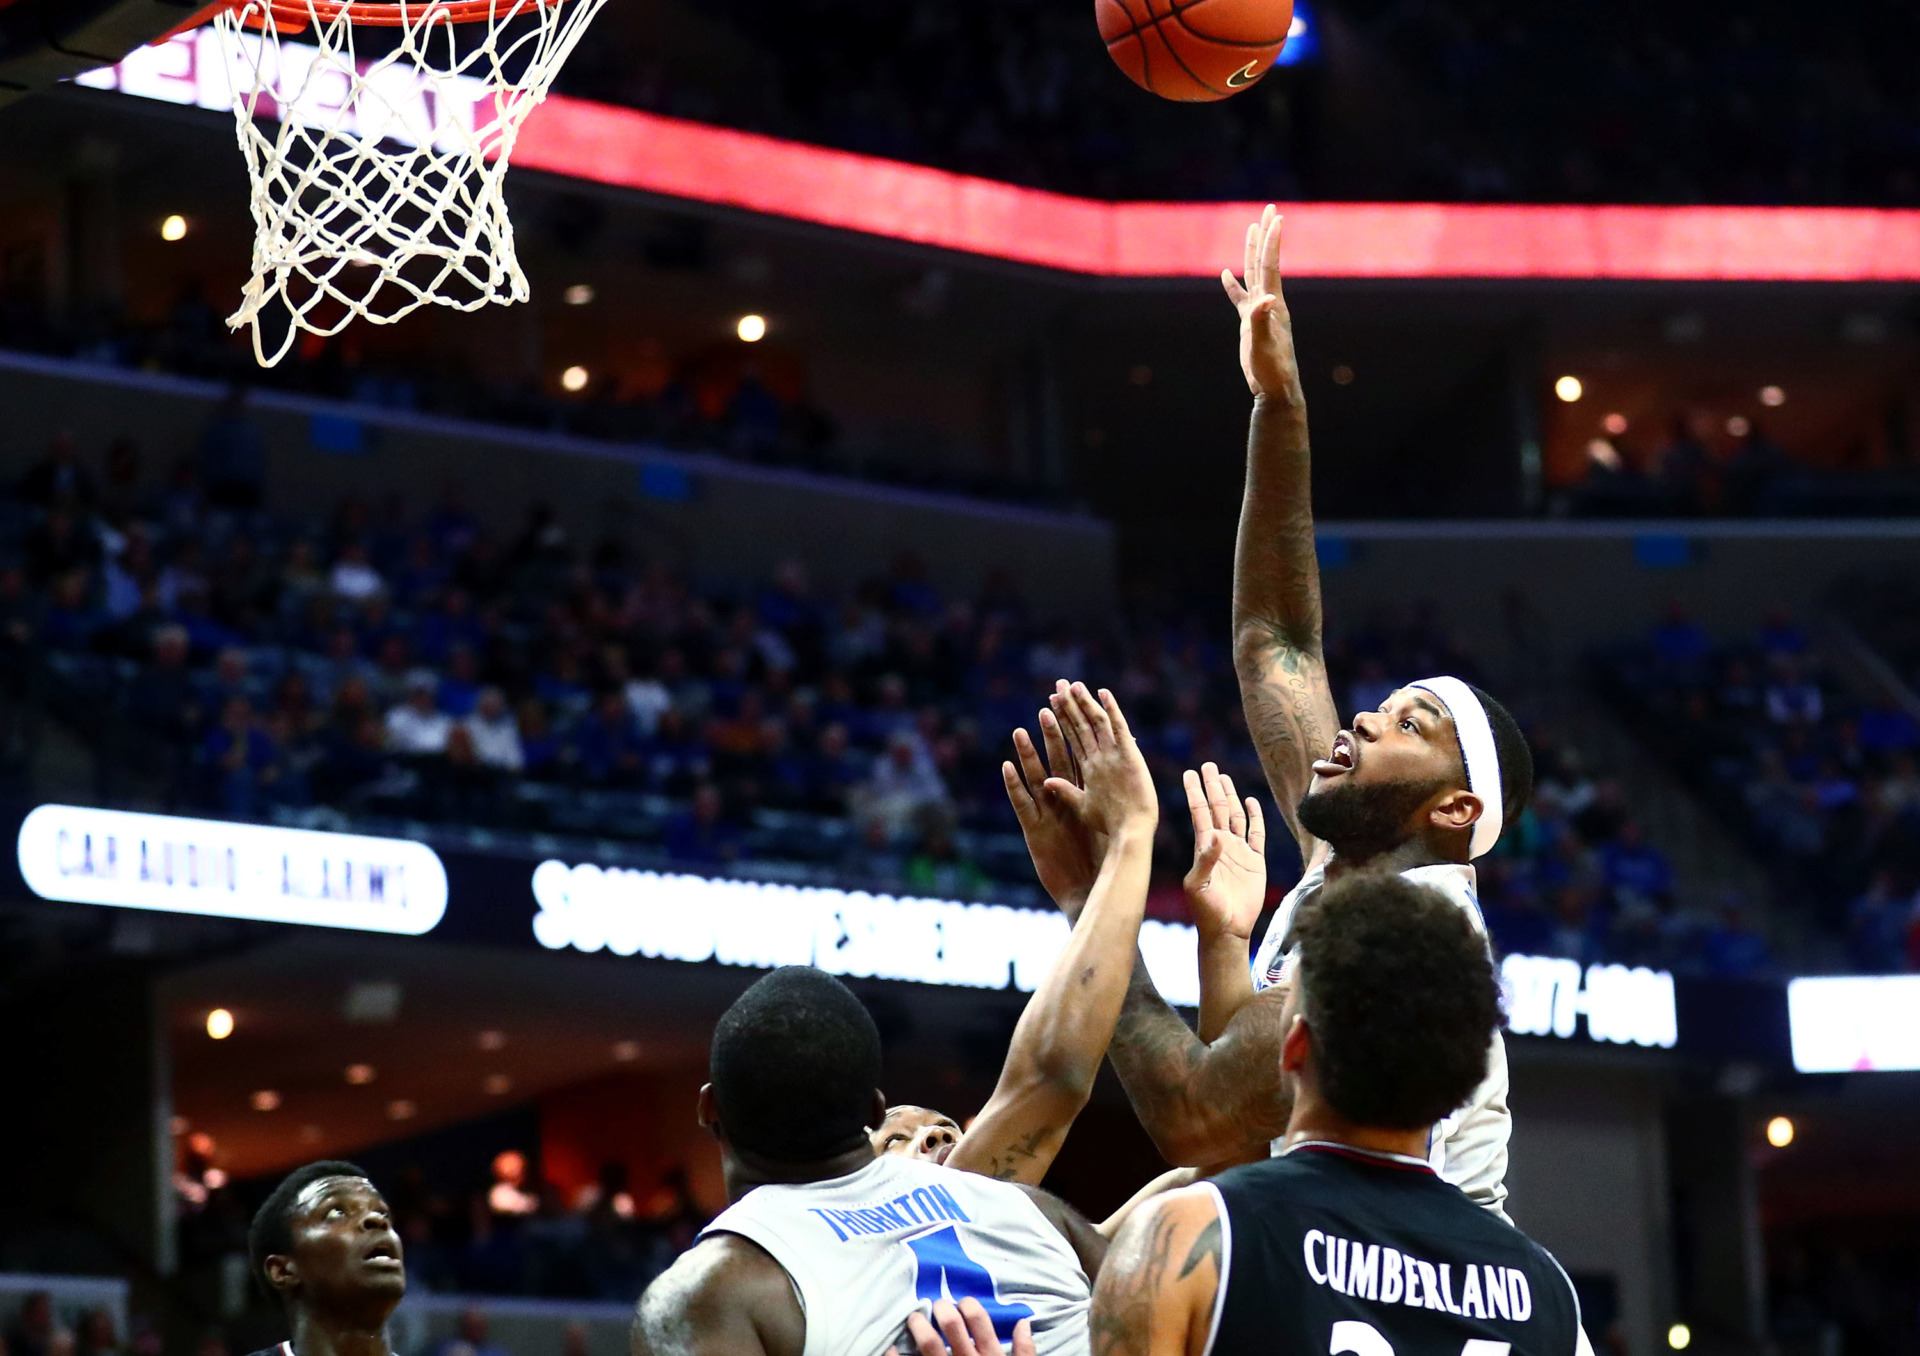 <strong>Memphis Tigers senior forward Mike Parks Jr. (10) pulls up for a shot during a game against the Cincinnati Bearcats on Thursday, Feb. 7, 2019. Parks had one of his best performances of the season but missed two free throws.</strong> (Houston Cofield/Daily Memphian)